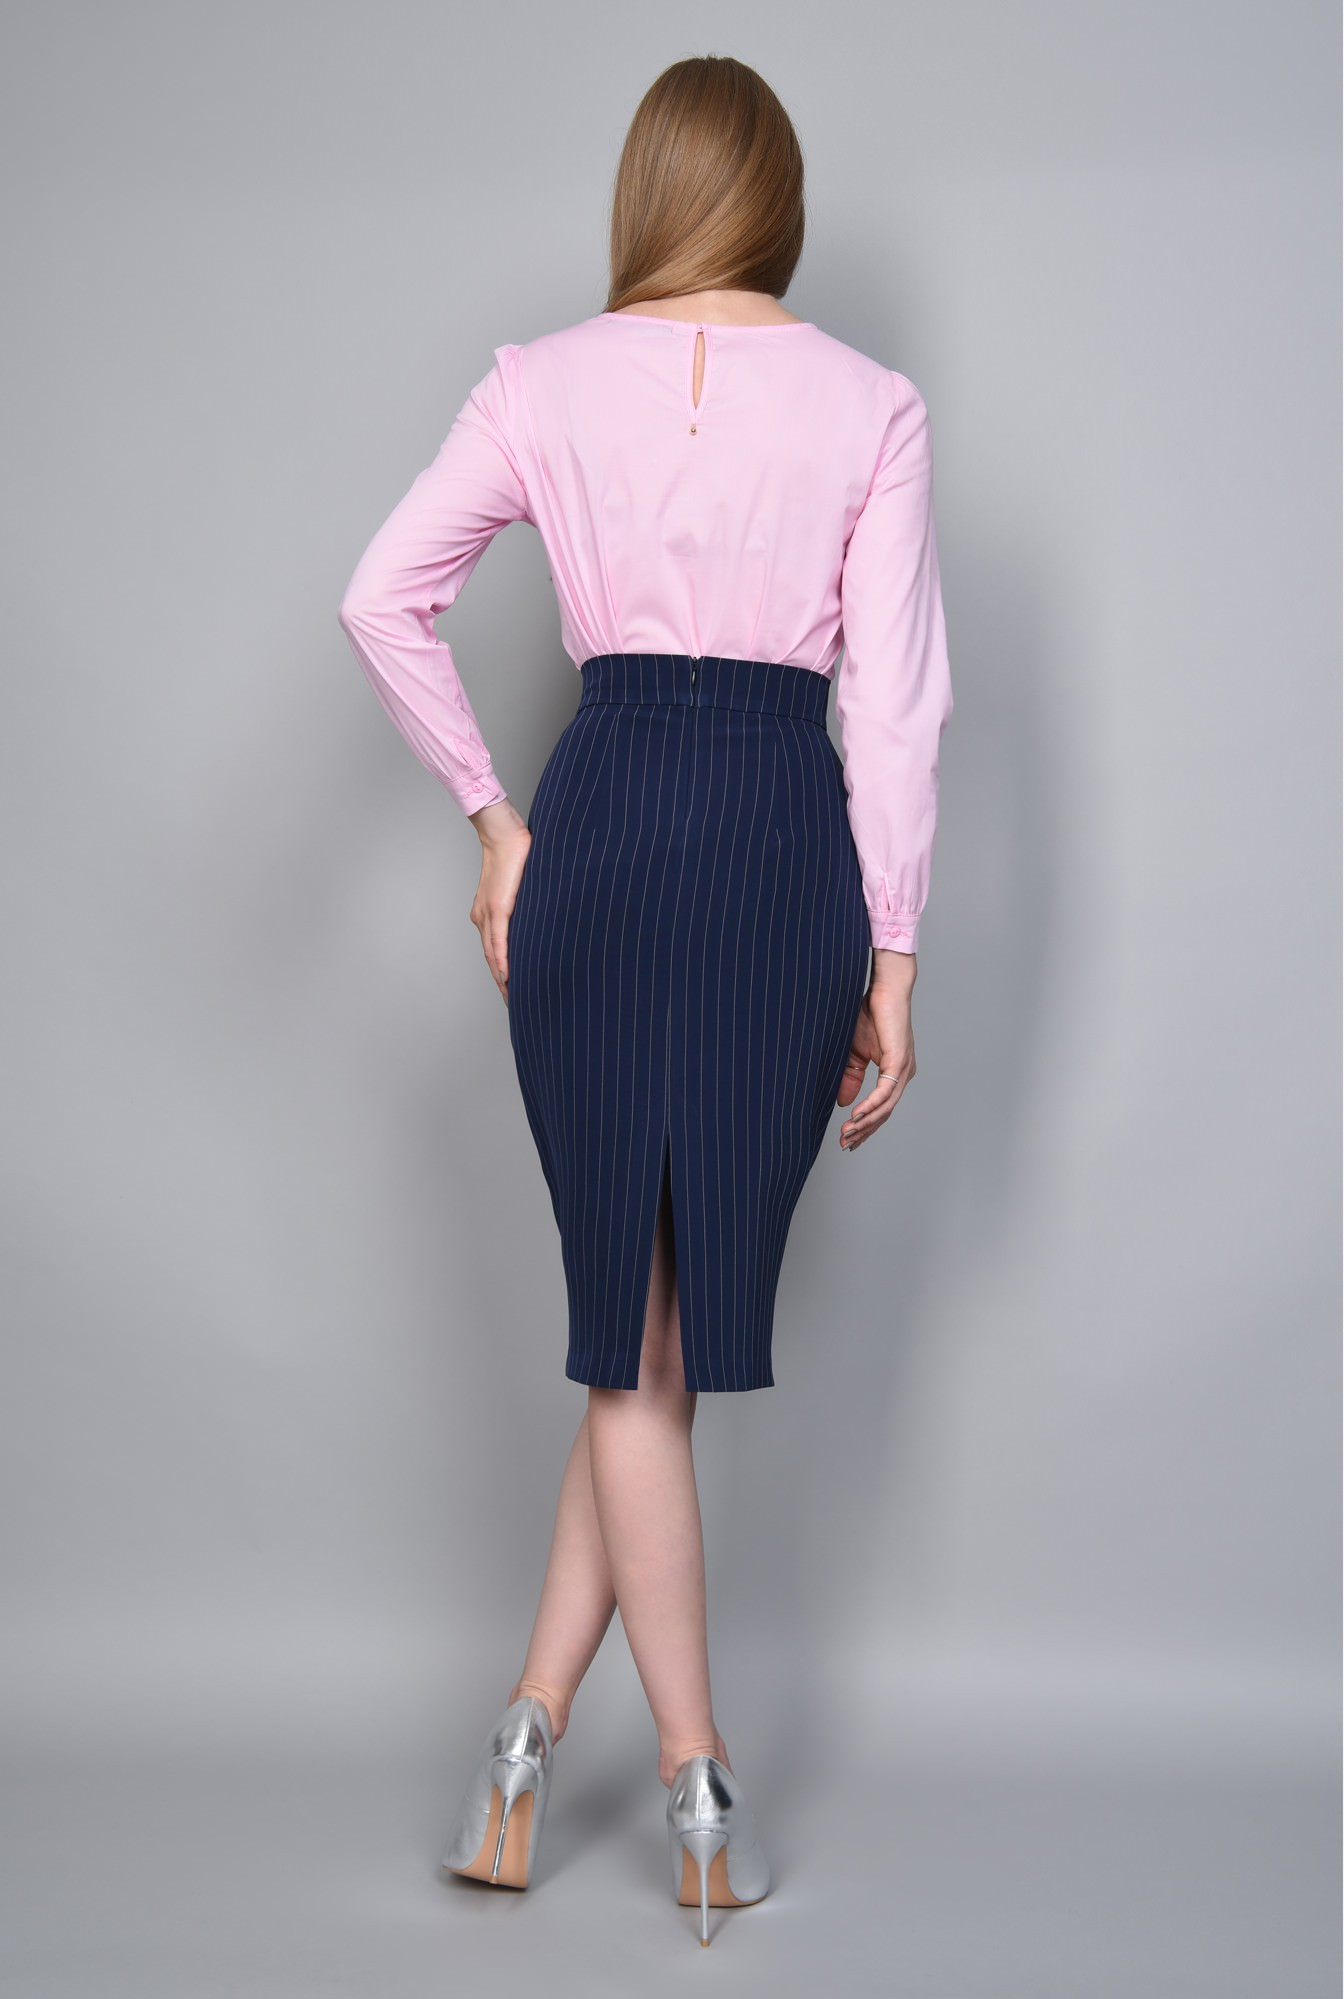 1 - BLUZA OFFICE BL 267-ROZ